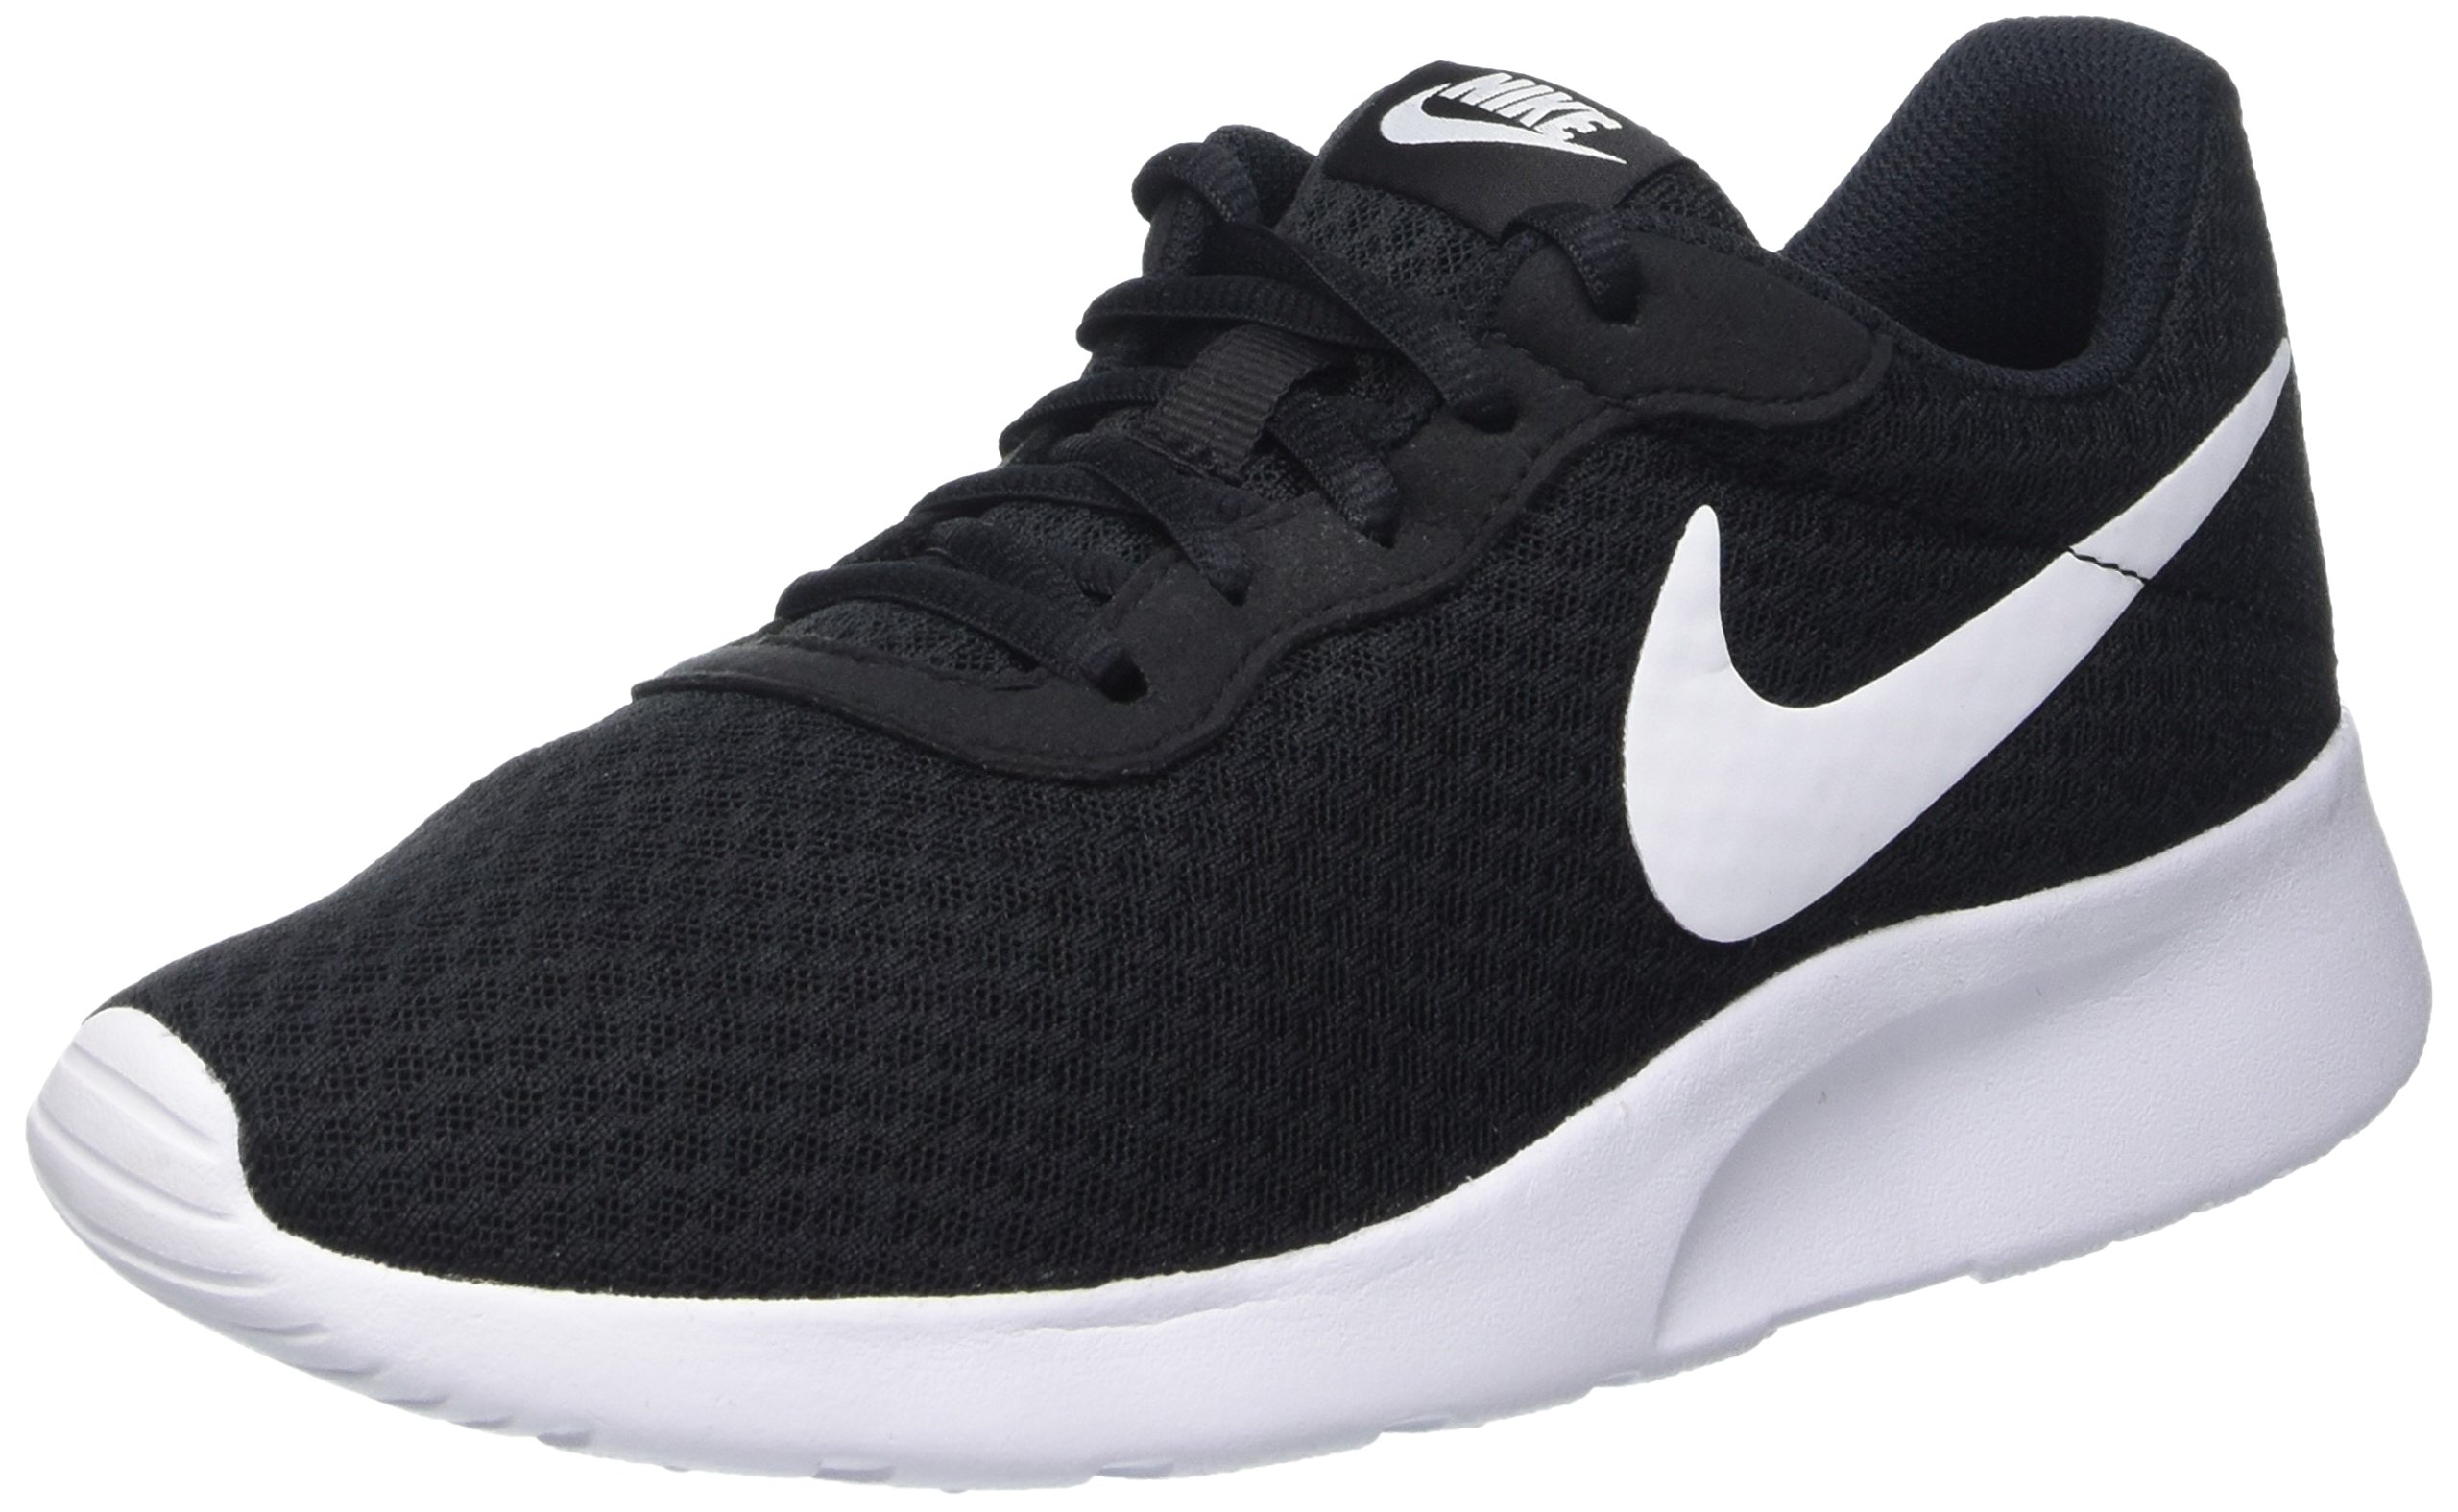 Nike Women's Tanjun Black/White Running Shoe 9 Women US